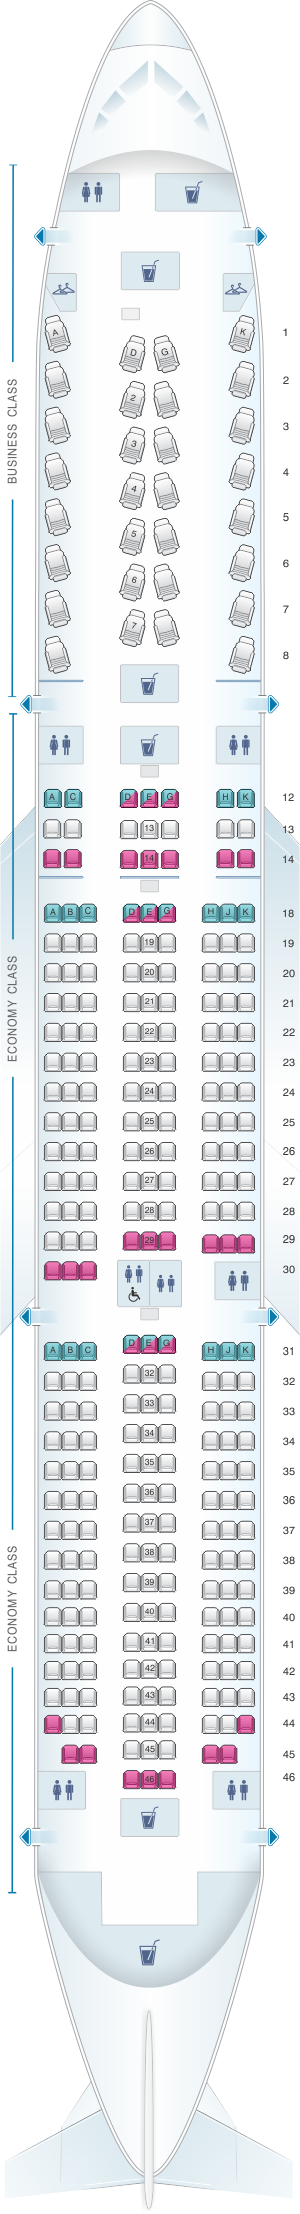 Seat map for Air Canada Boeing B787-9 (789) North America